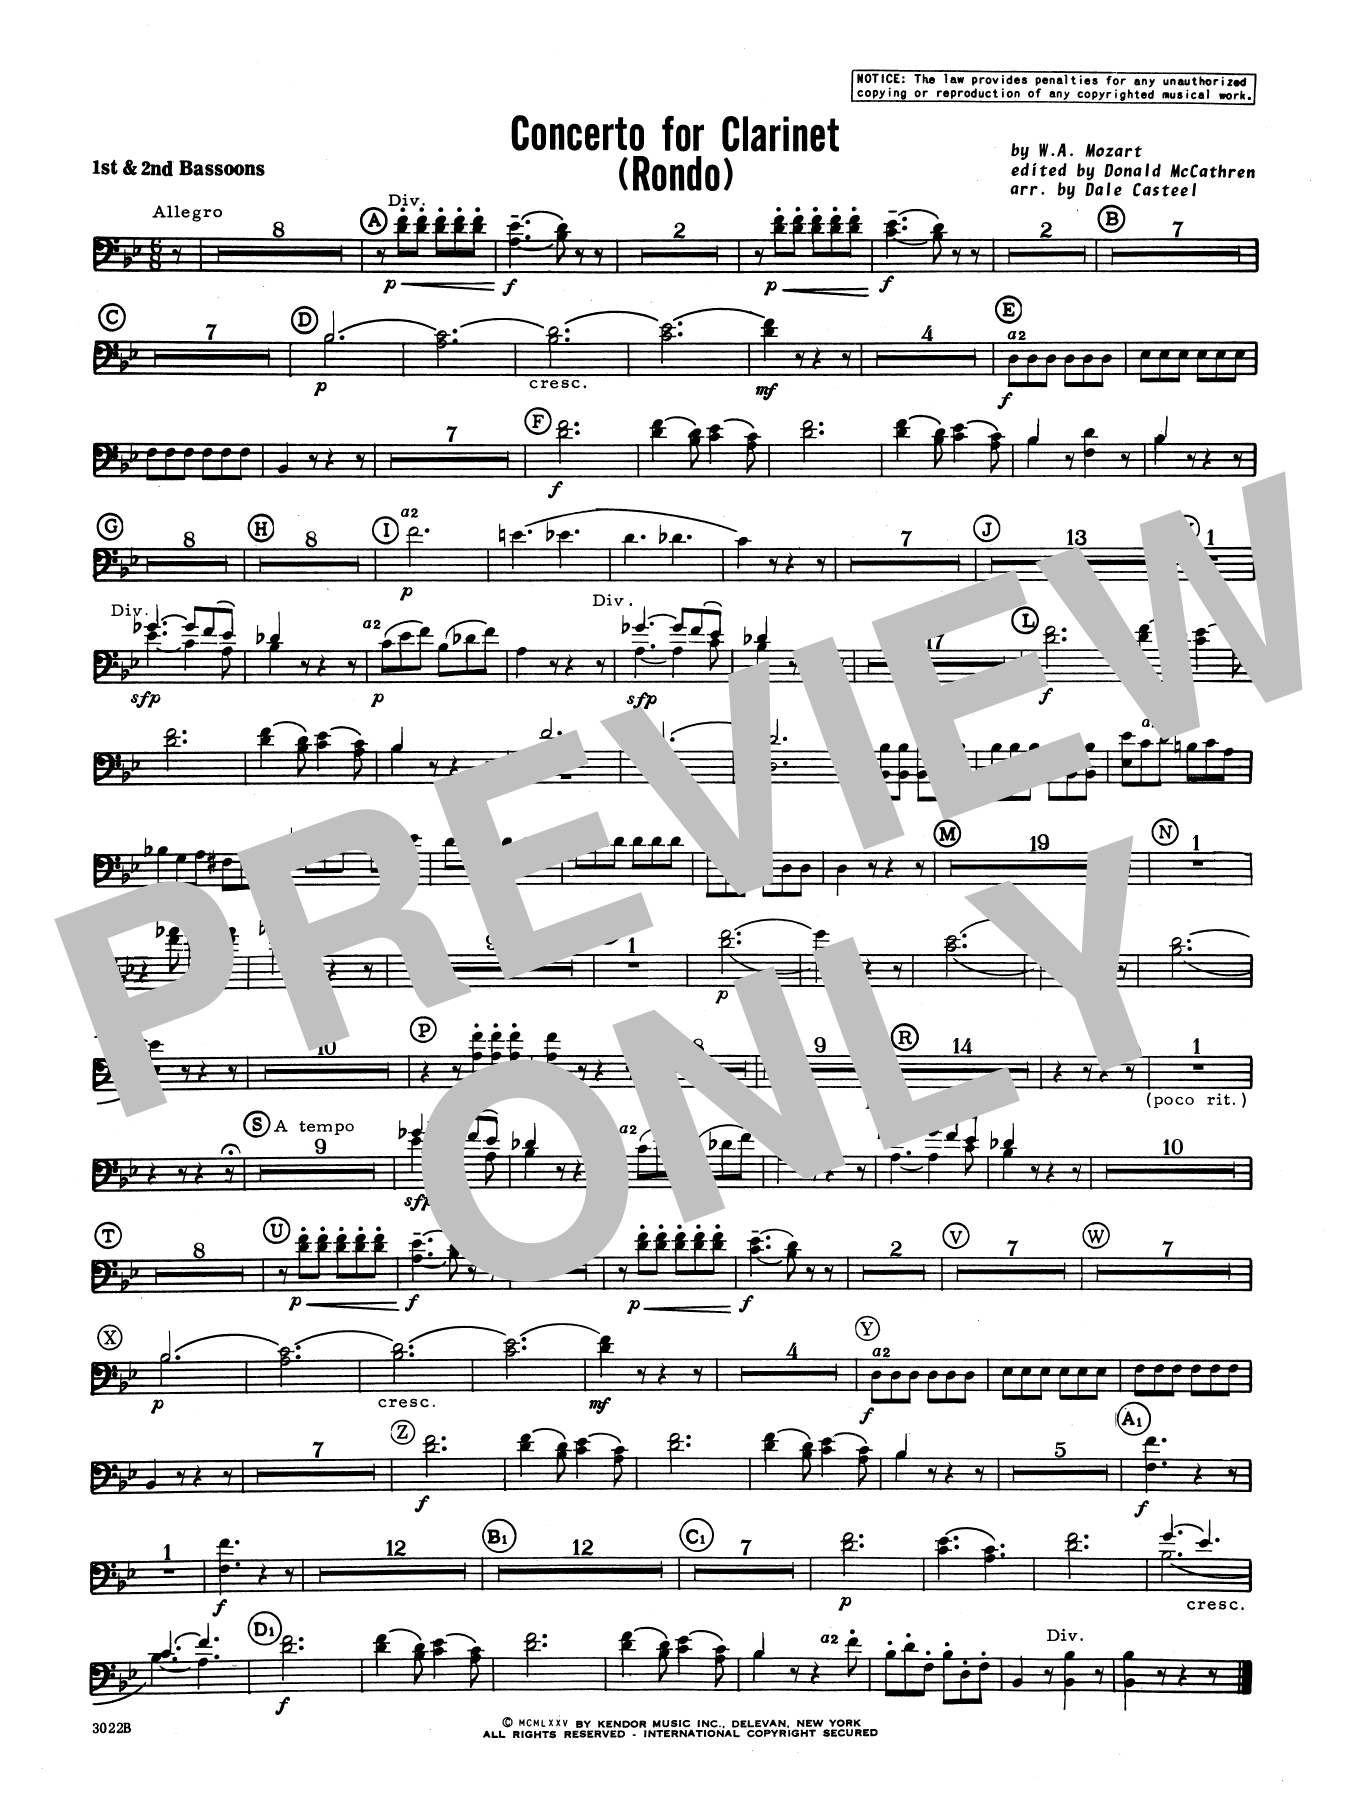 Donald McCathren and Dale Casteel Concerto For Clarinet - Rondo (3rd Movement) - K.622 - Bassoon sheet music notes printable PDF score